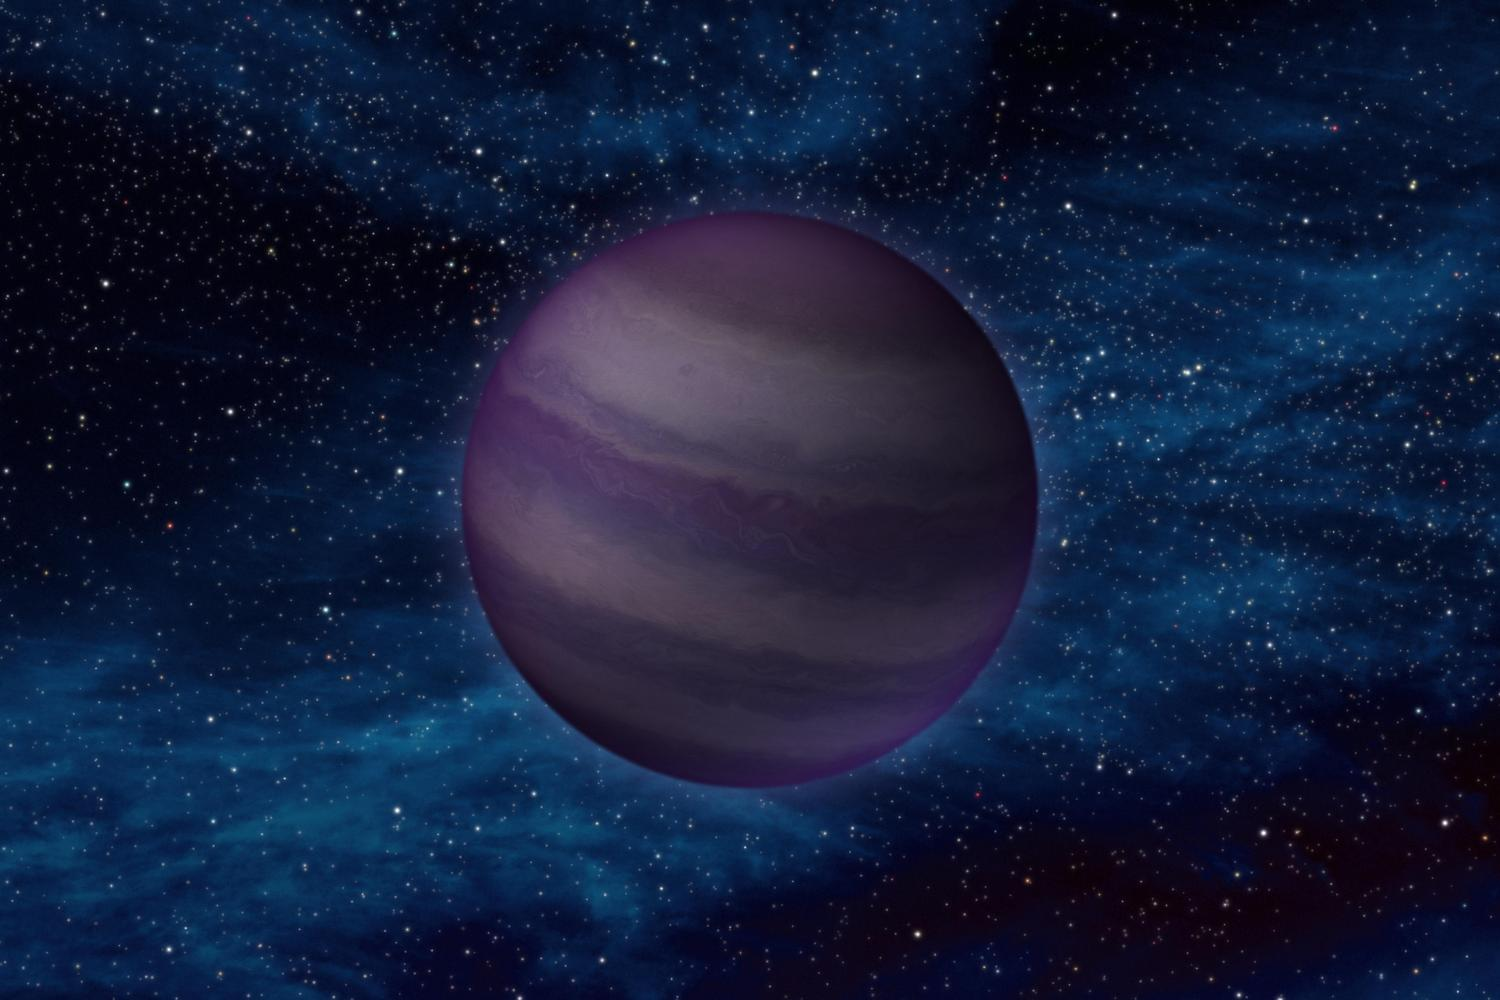 UC Berkeley, NASA looking for citizen scientists to help find Planet 9